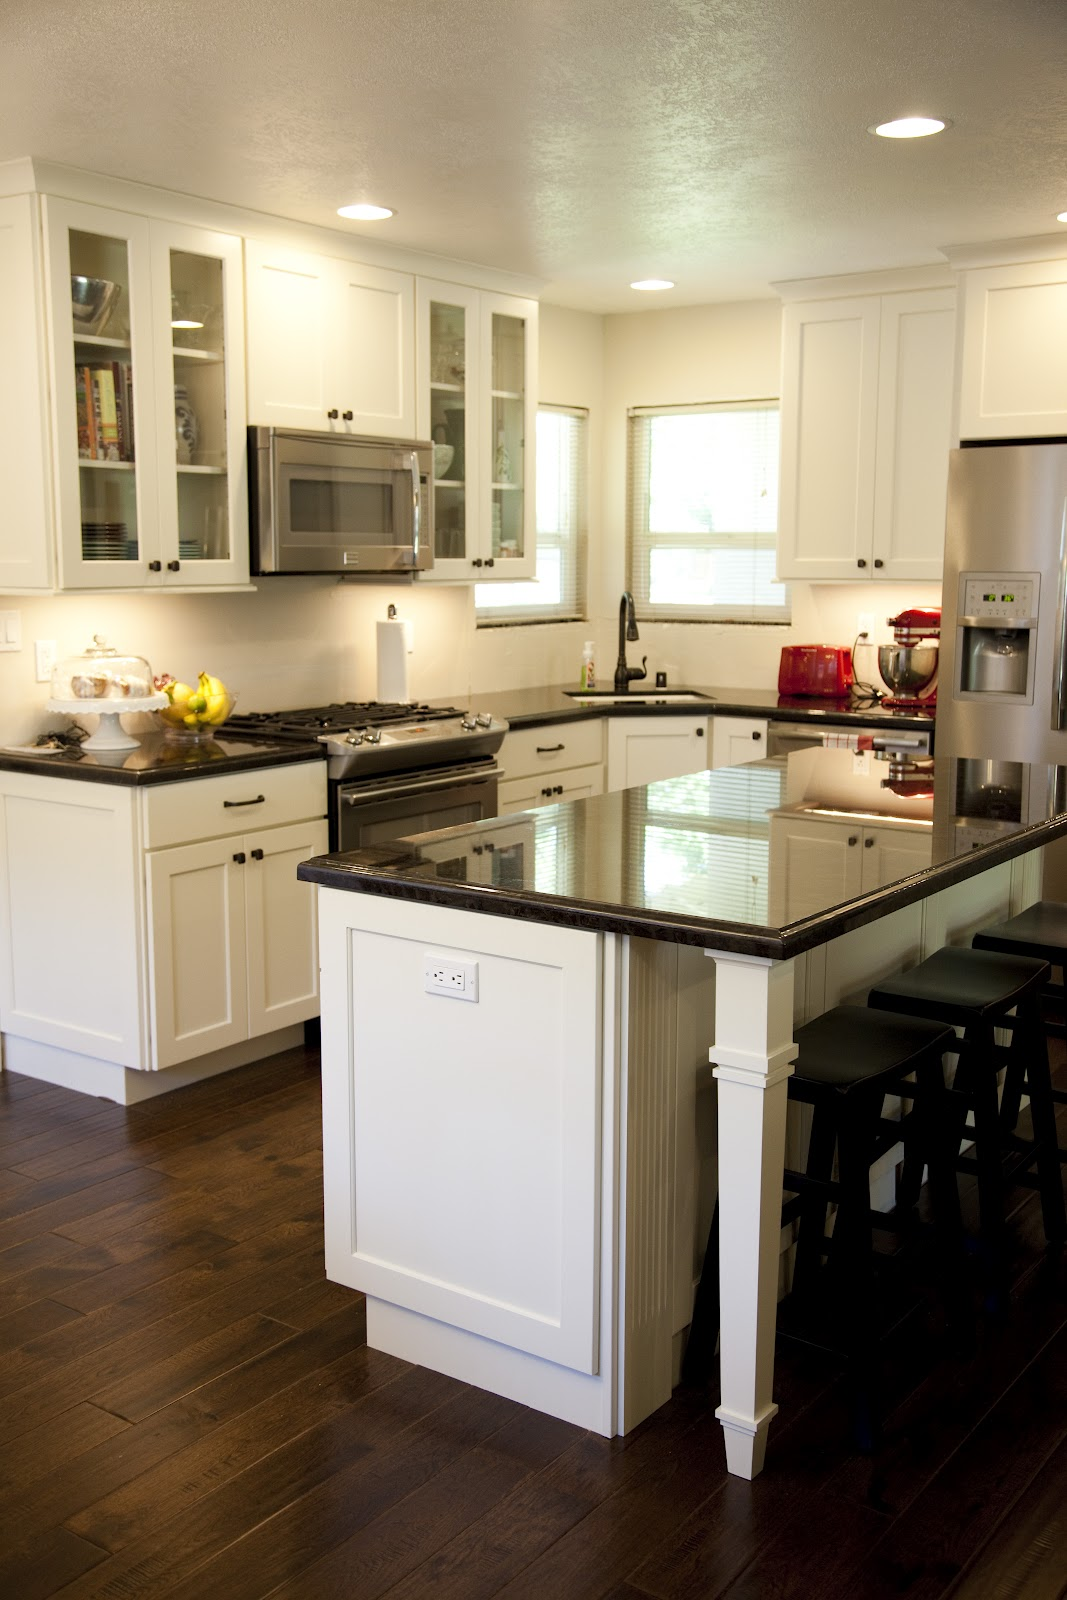 Lowe's Schuler Cabinets